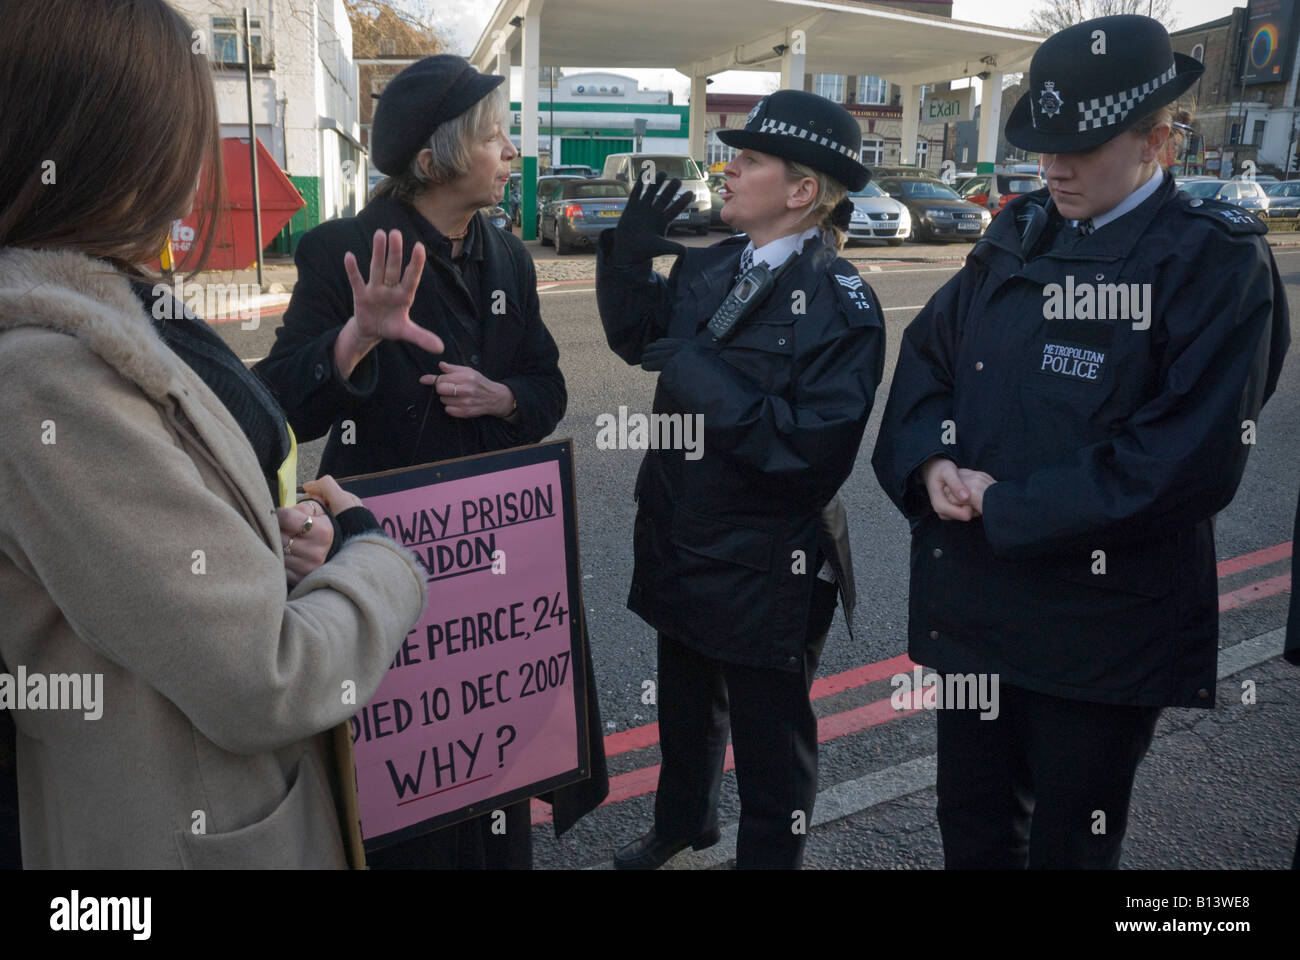 Woman police officer argues with Pauline Campbell at demonstration against custody deaths outside Holloway Prison, - Stock Image